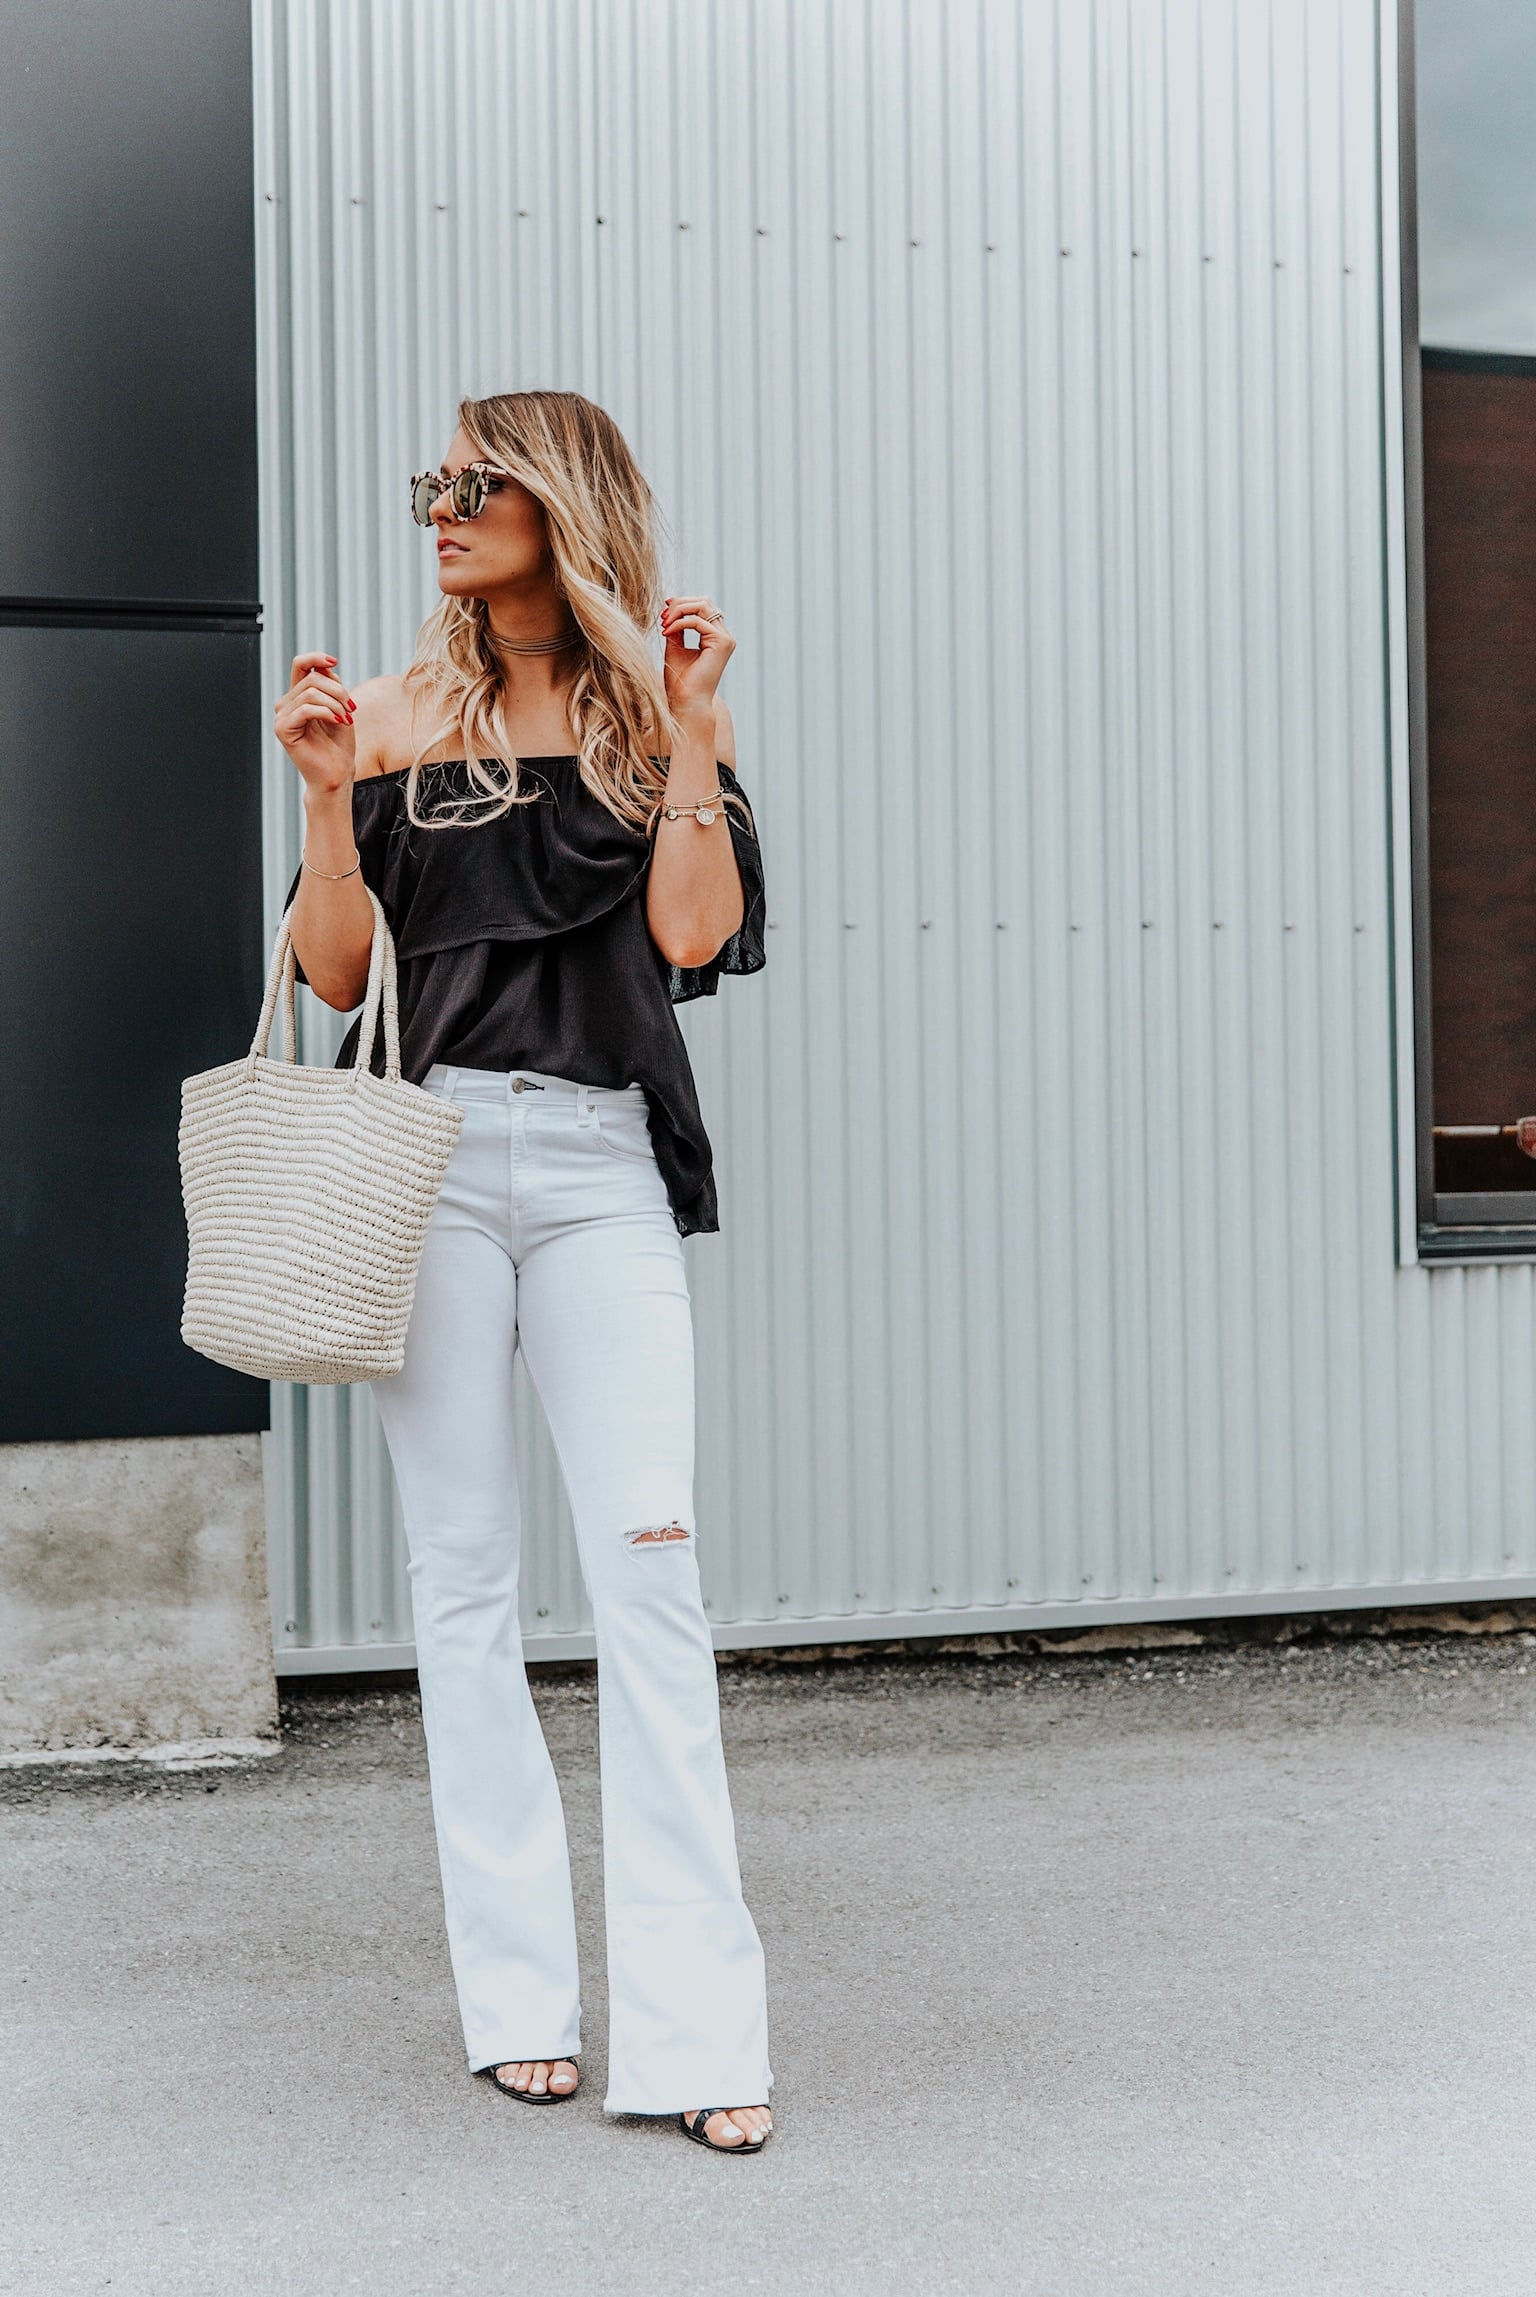 1 person, girl in white flares outfit, Labor Day sales blog post